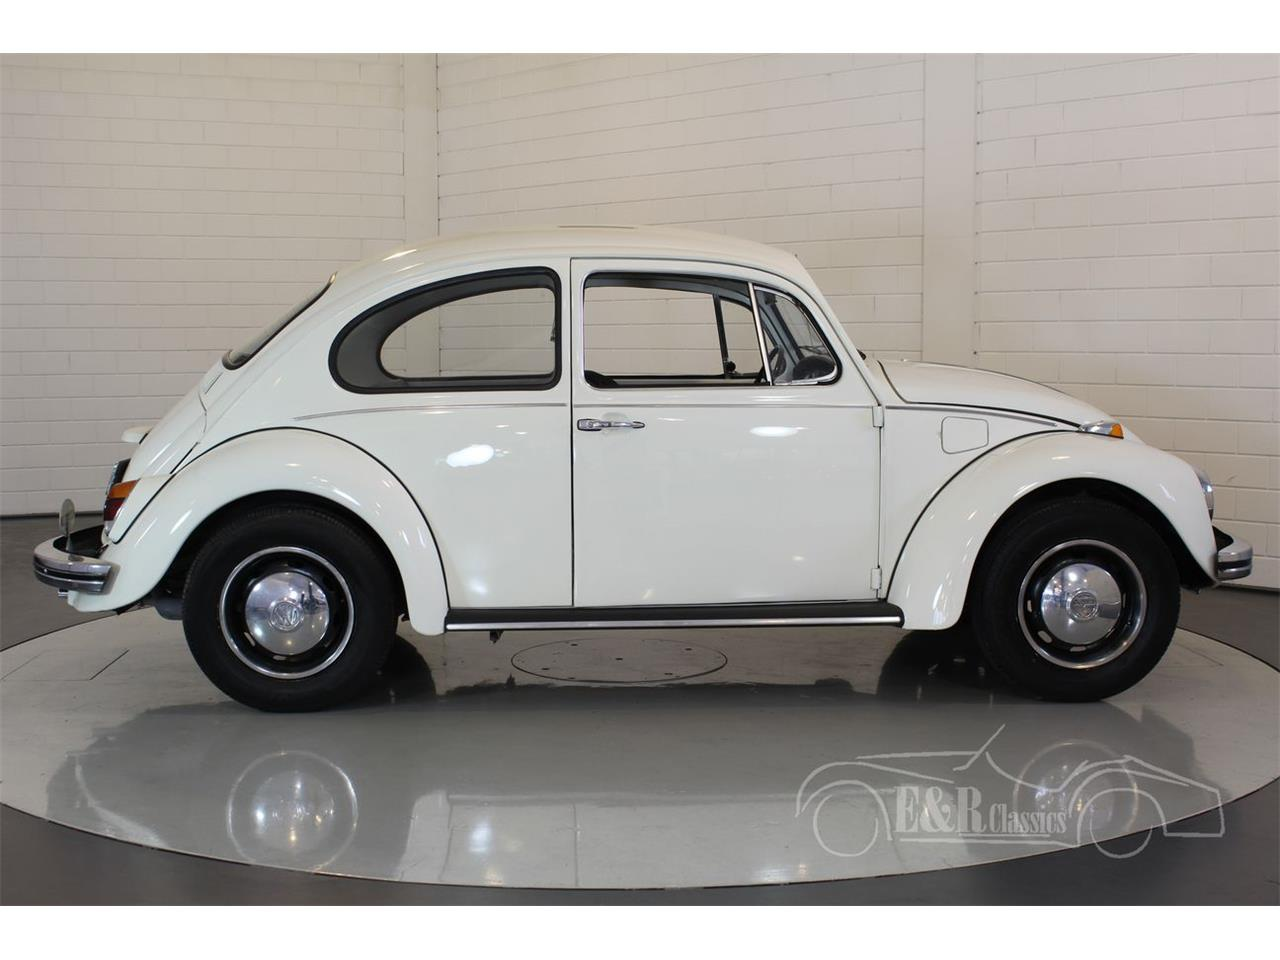 Large Picture of Classic '73 Volkswagen Beetle Offered by E & R Classics - QJ2U